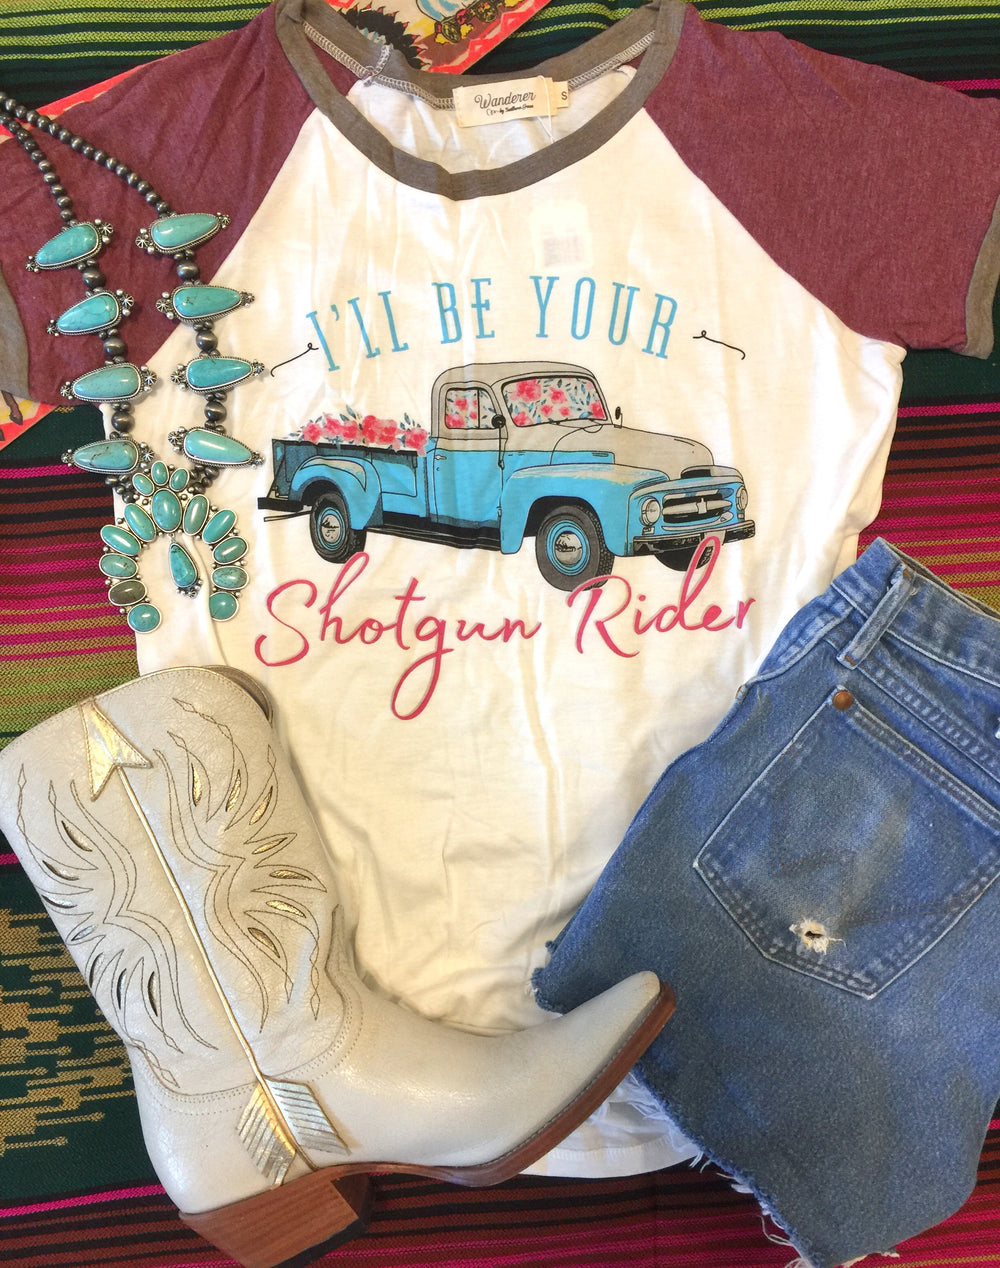 The Old Flats Shotgun Rider Pickup Truck Graphic Tee